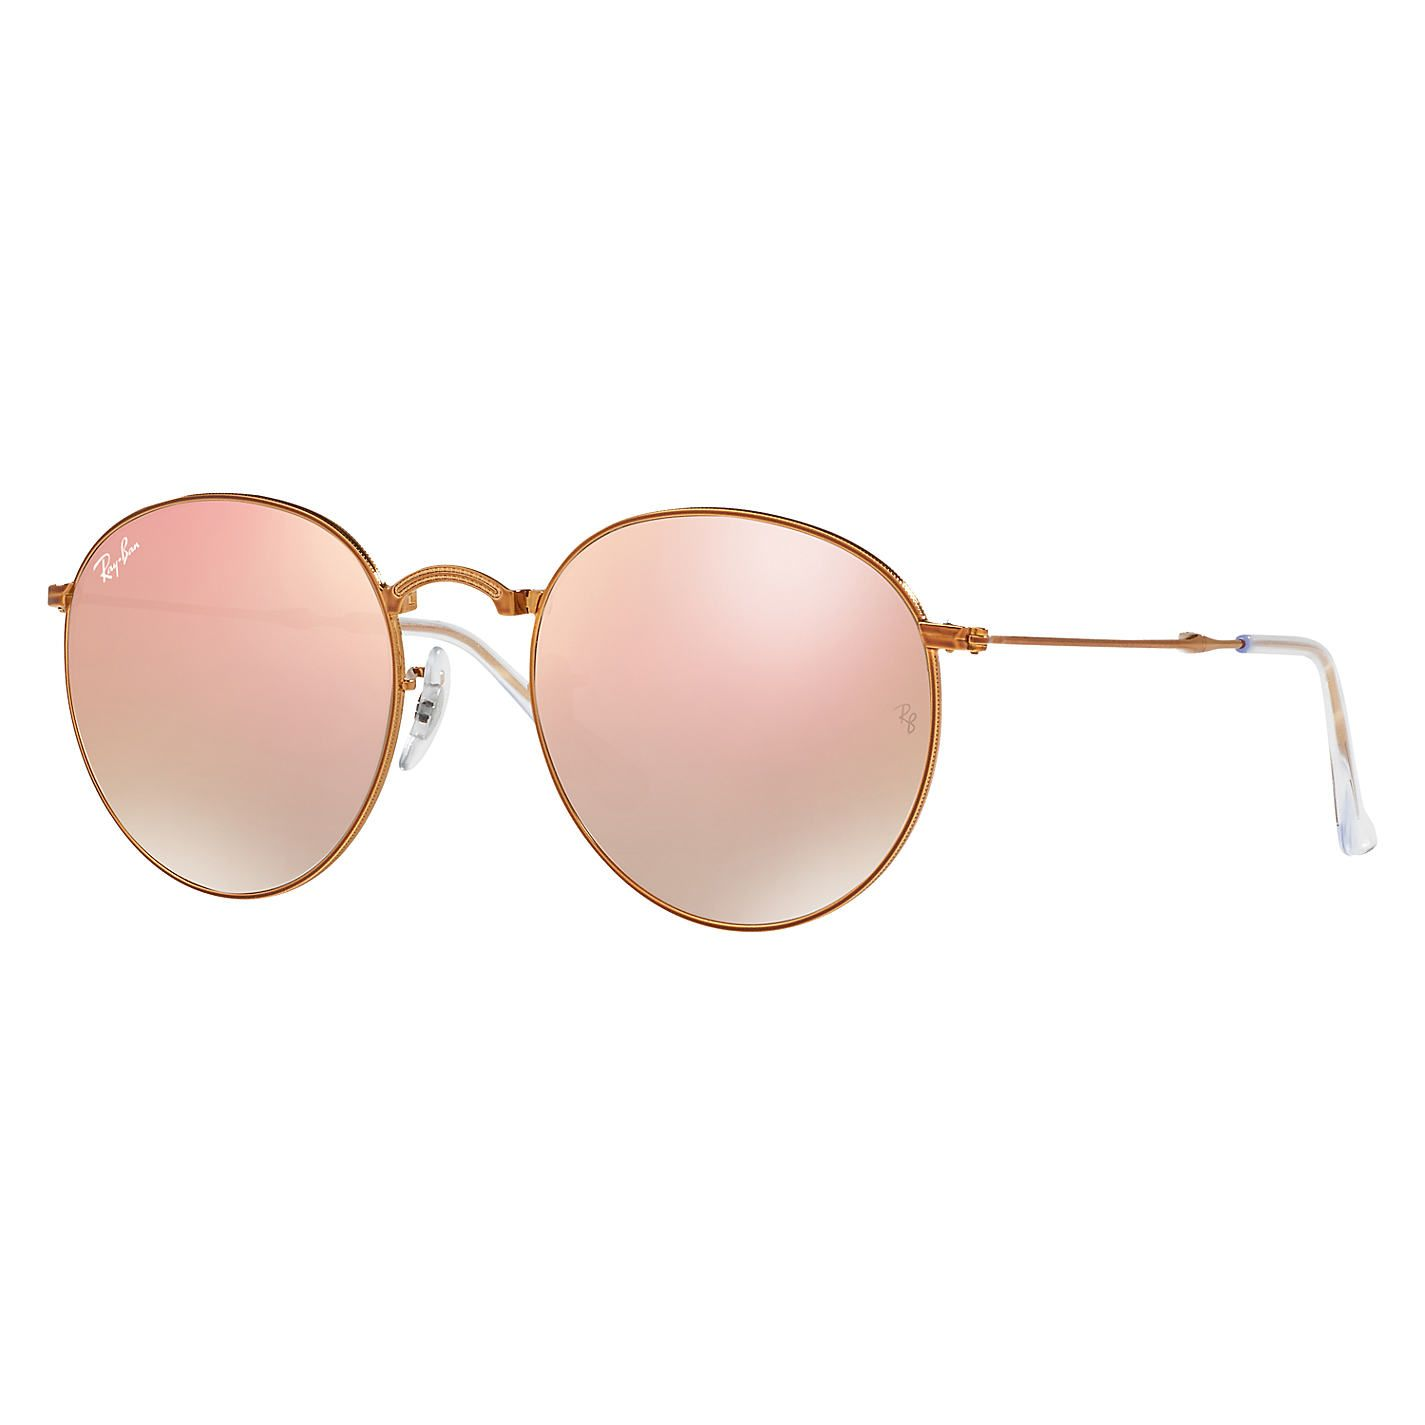 RAY BAN RAY-BAN Sonnenbrille »Round Folding Ii RB3532«, goldfarben, 001/Z2 - gold/rosa